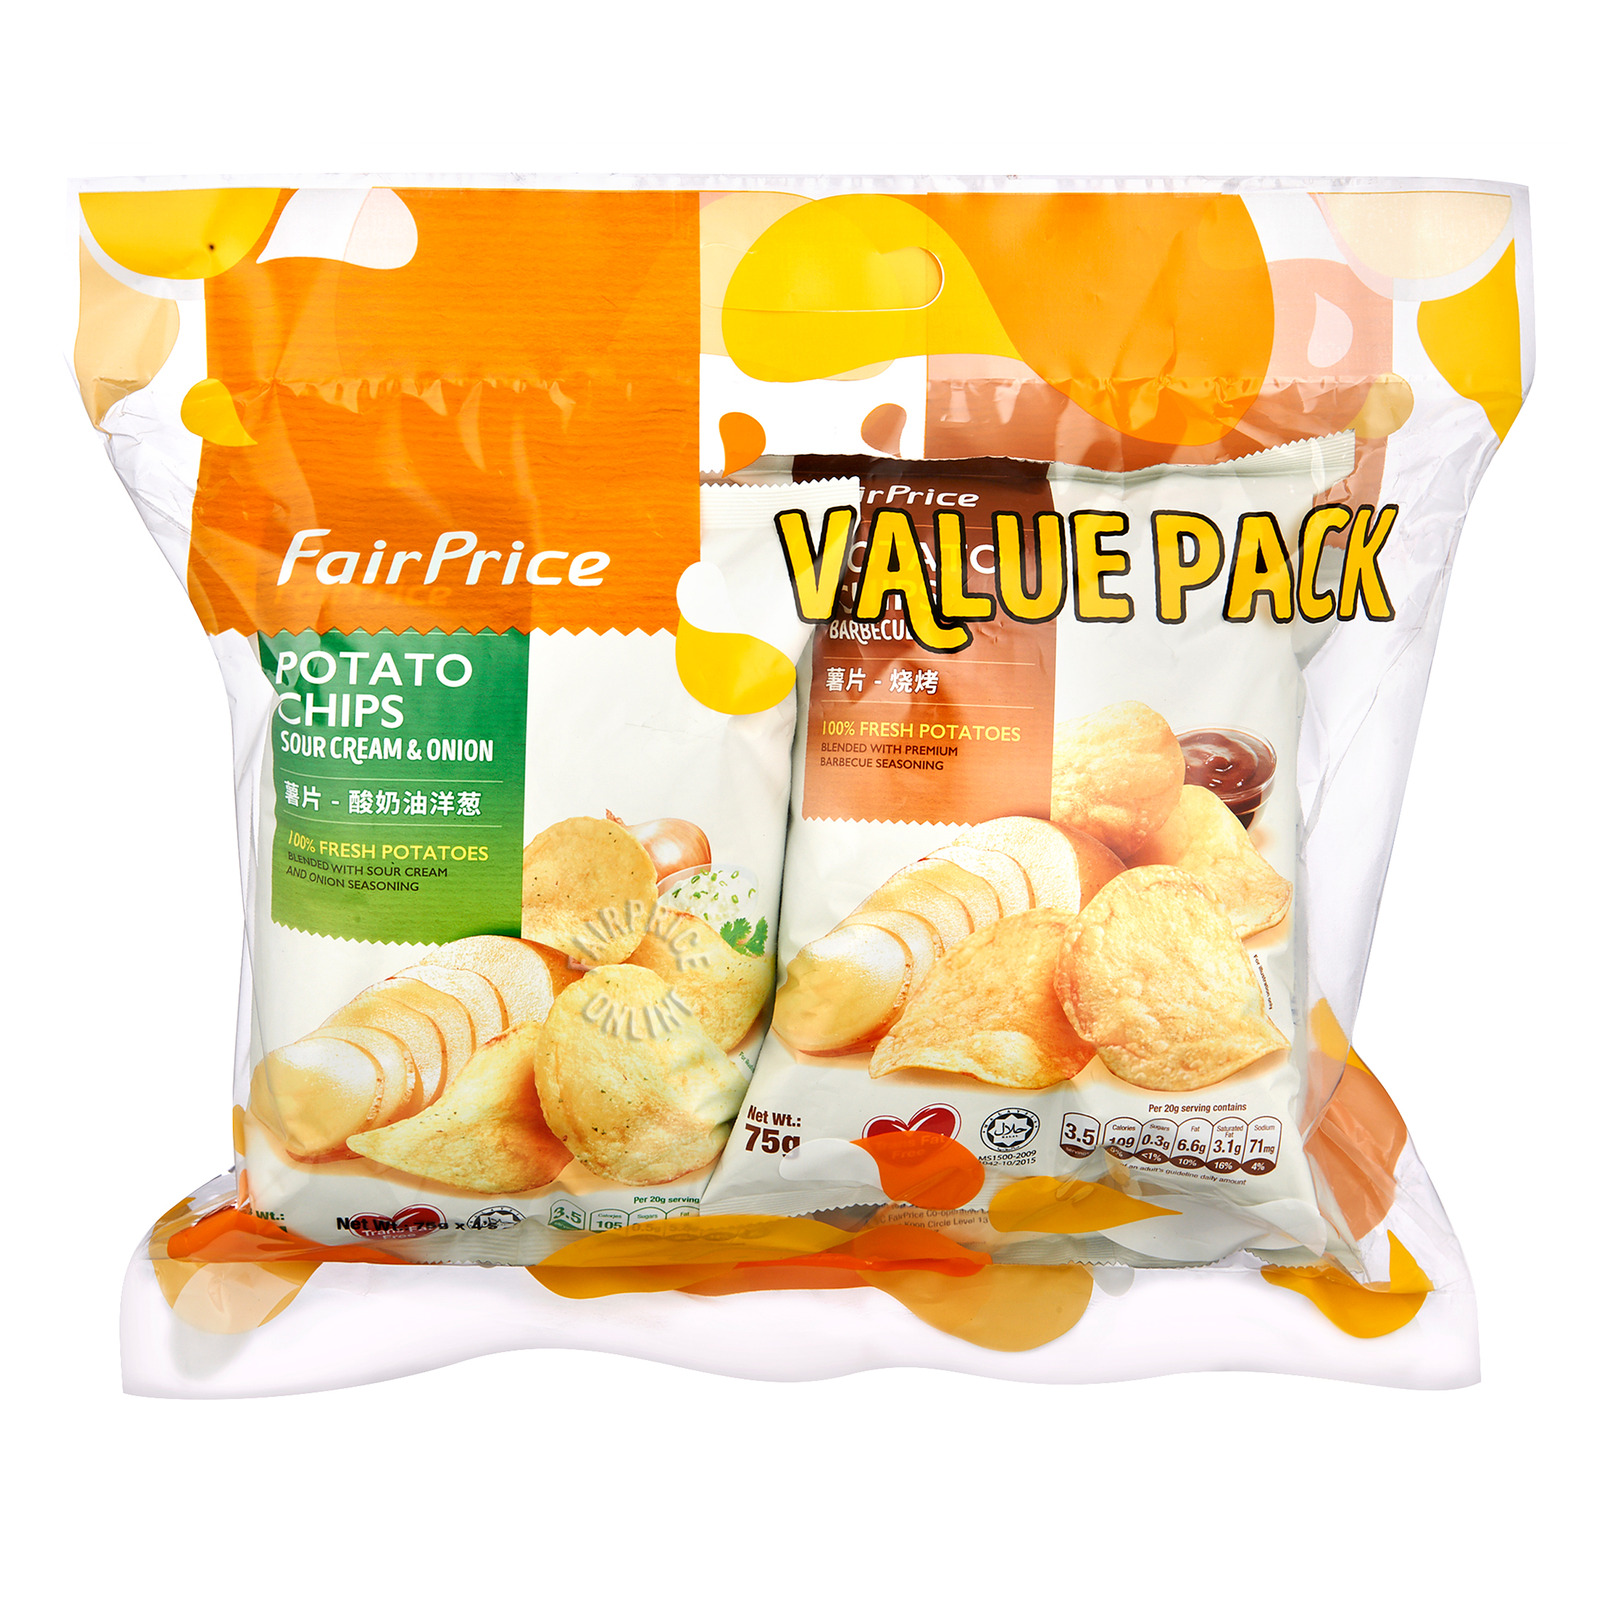 FairPrice Potato Chips - Value Pack (4 Flavours)